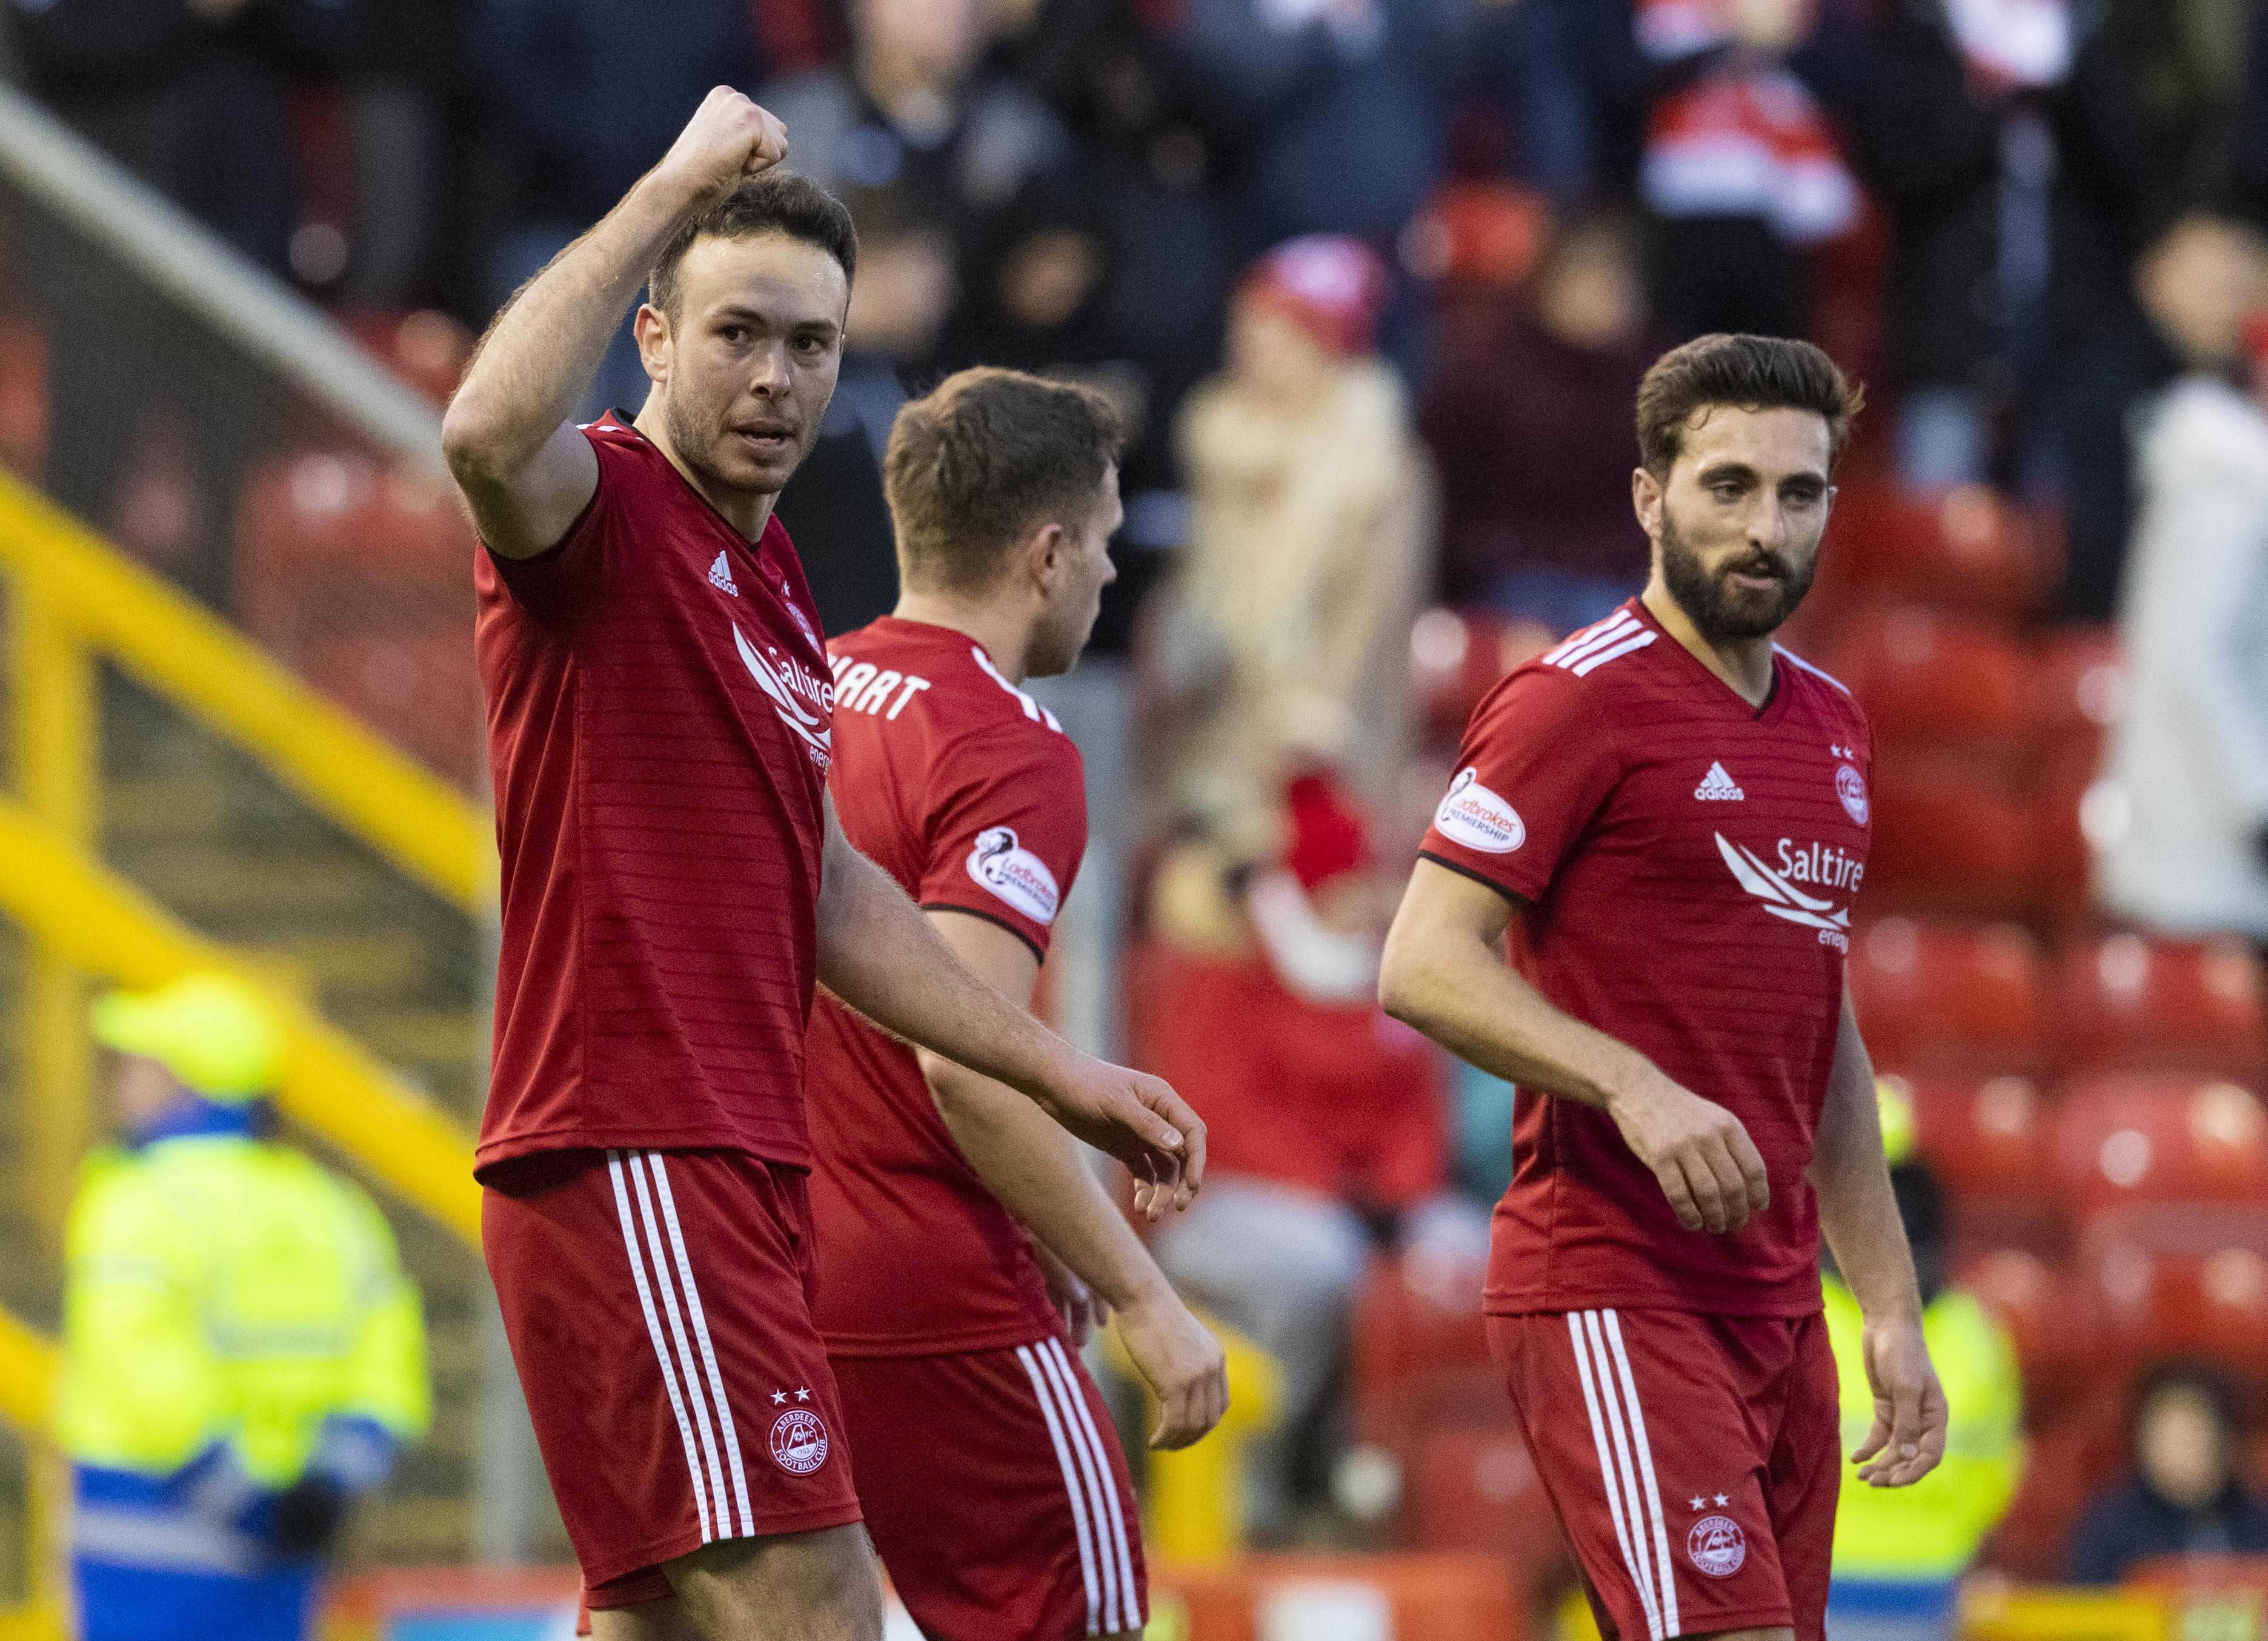 Aberdeen's Andrew Considine celebrates his goal against Queen of the South.